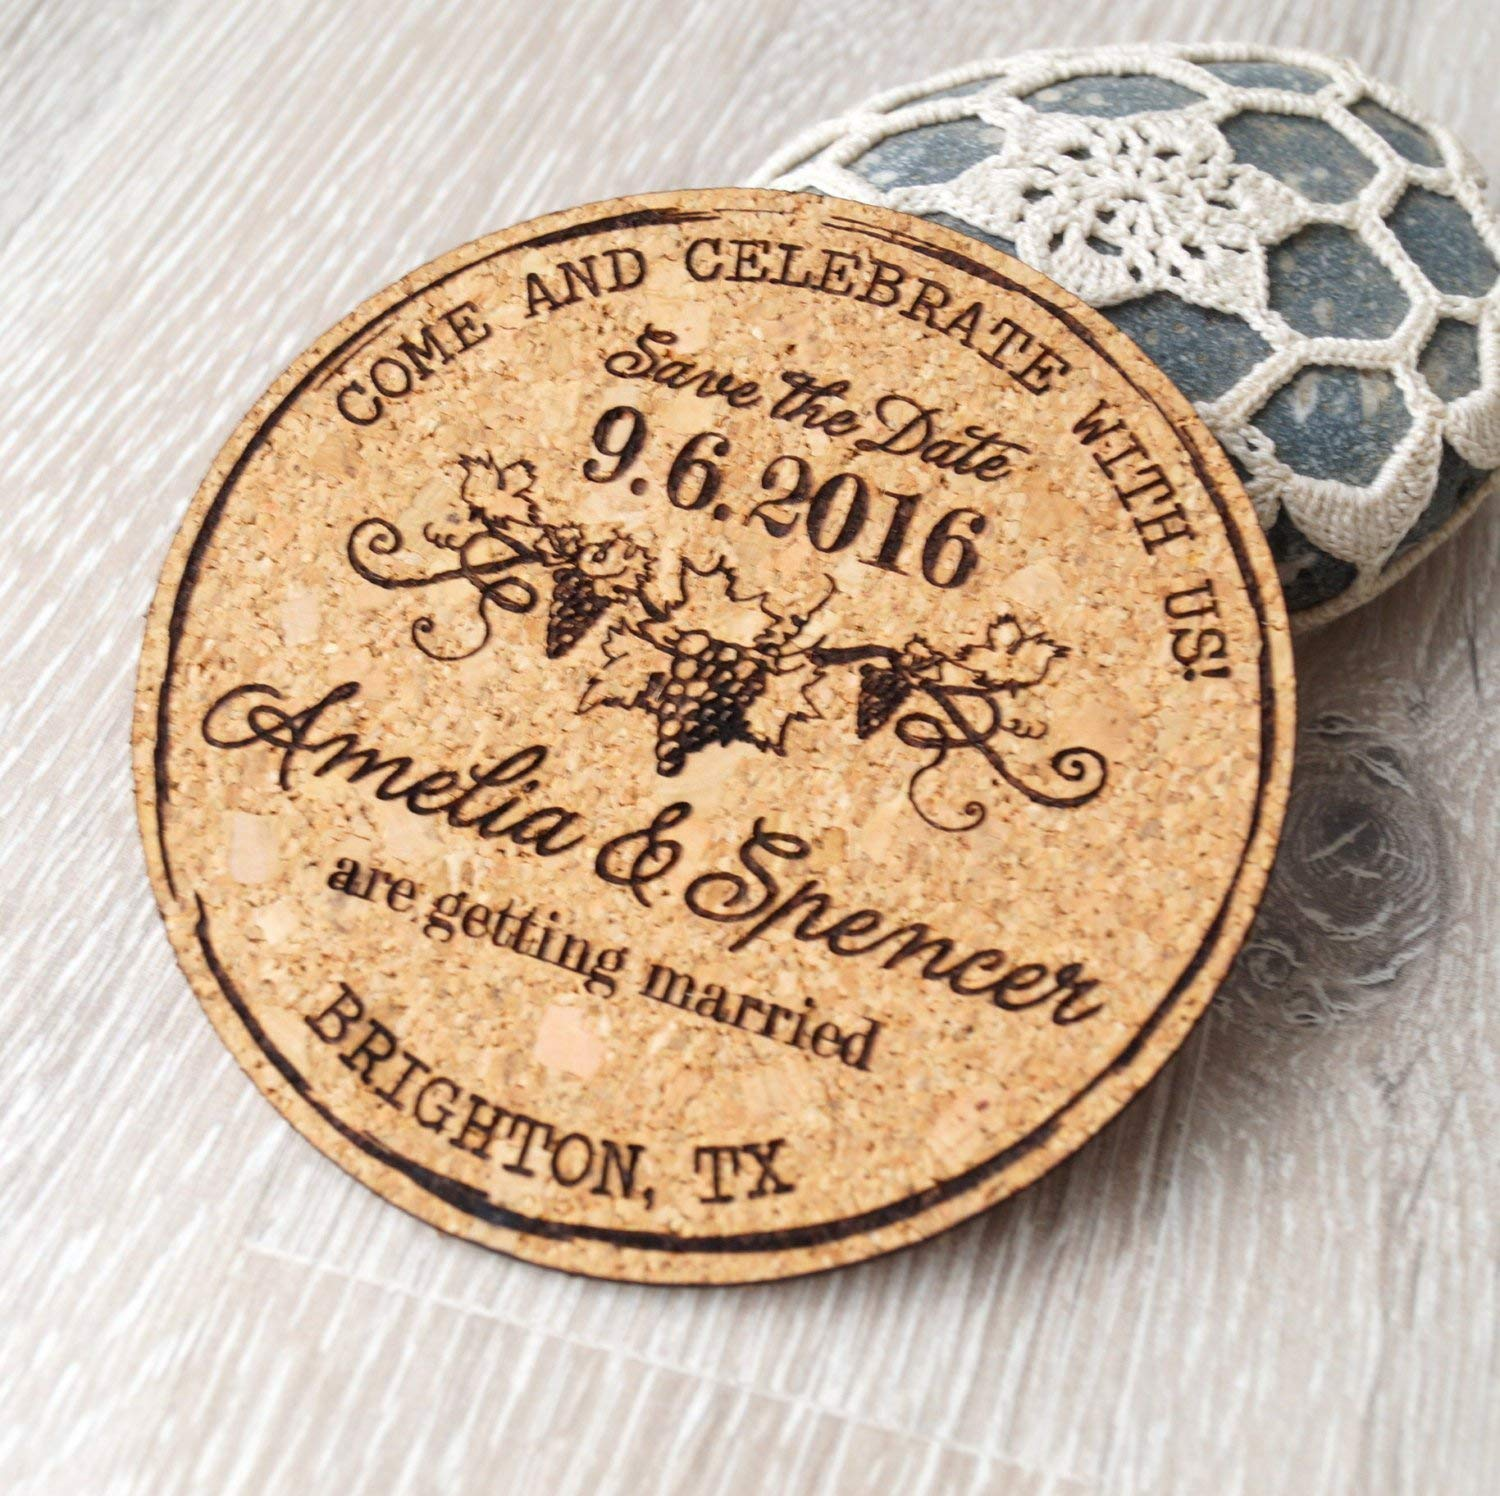 Cork save the dates, rustic save the date coasters or magnets, vineyard wedding magnets, personalized laser engraved coasters - Set of 25 pc